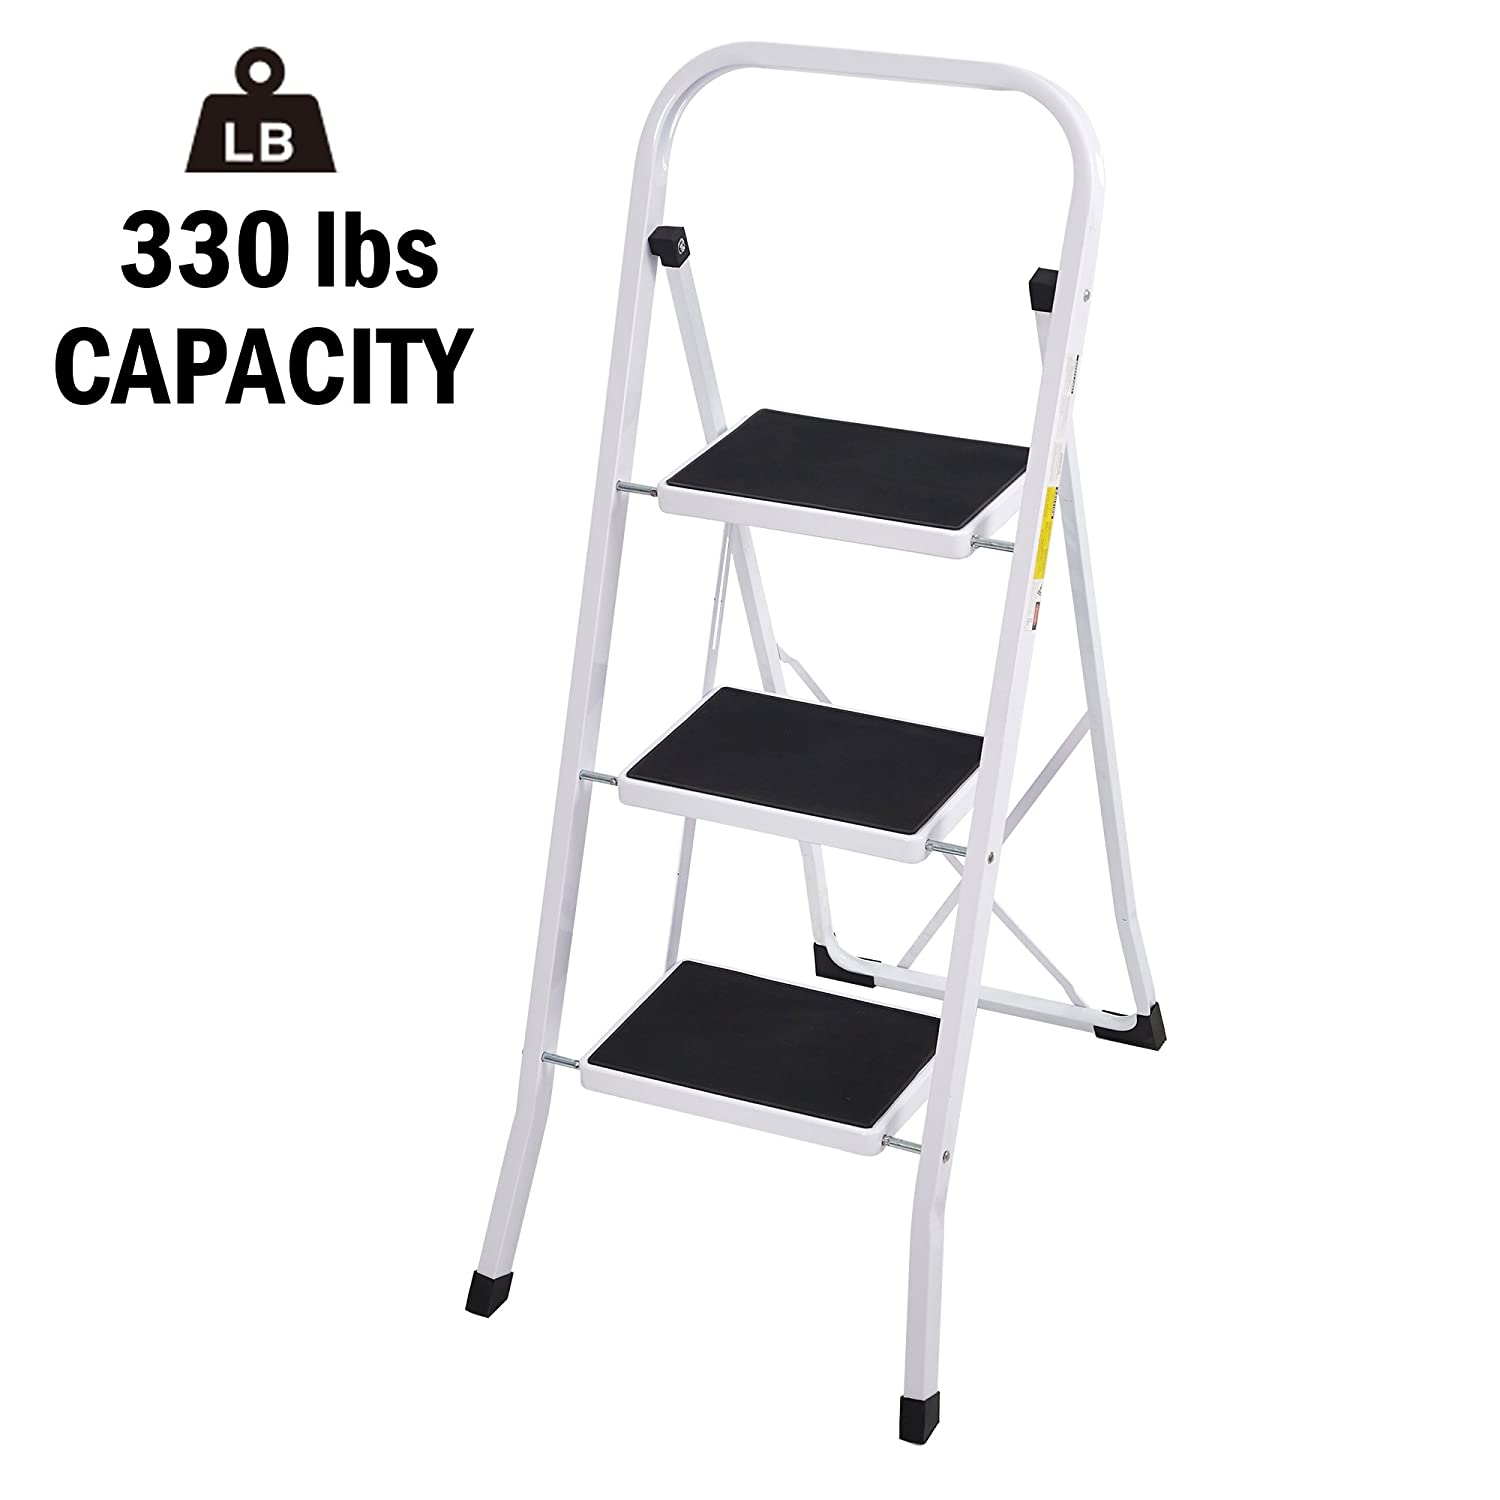 Sturdy Step Ladder 3 Step Heavy Duty Folding 3 Step Stool Home Kitchen Step Ladders, White